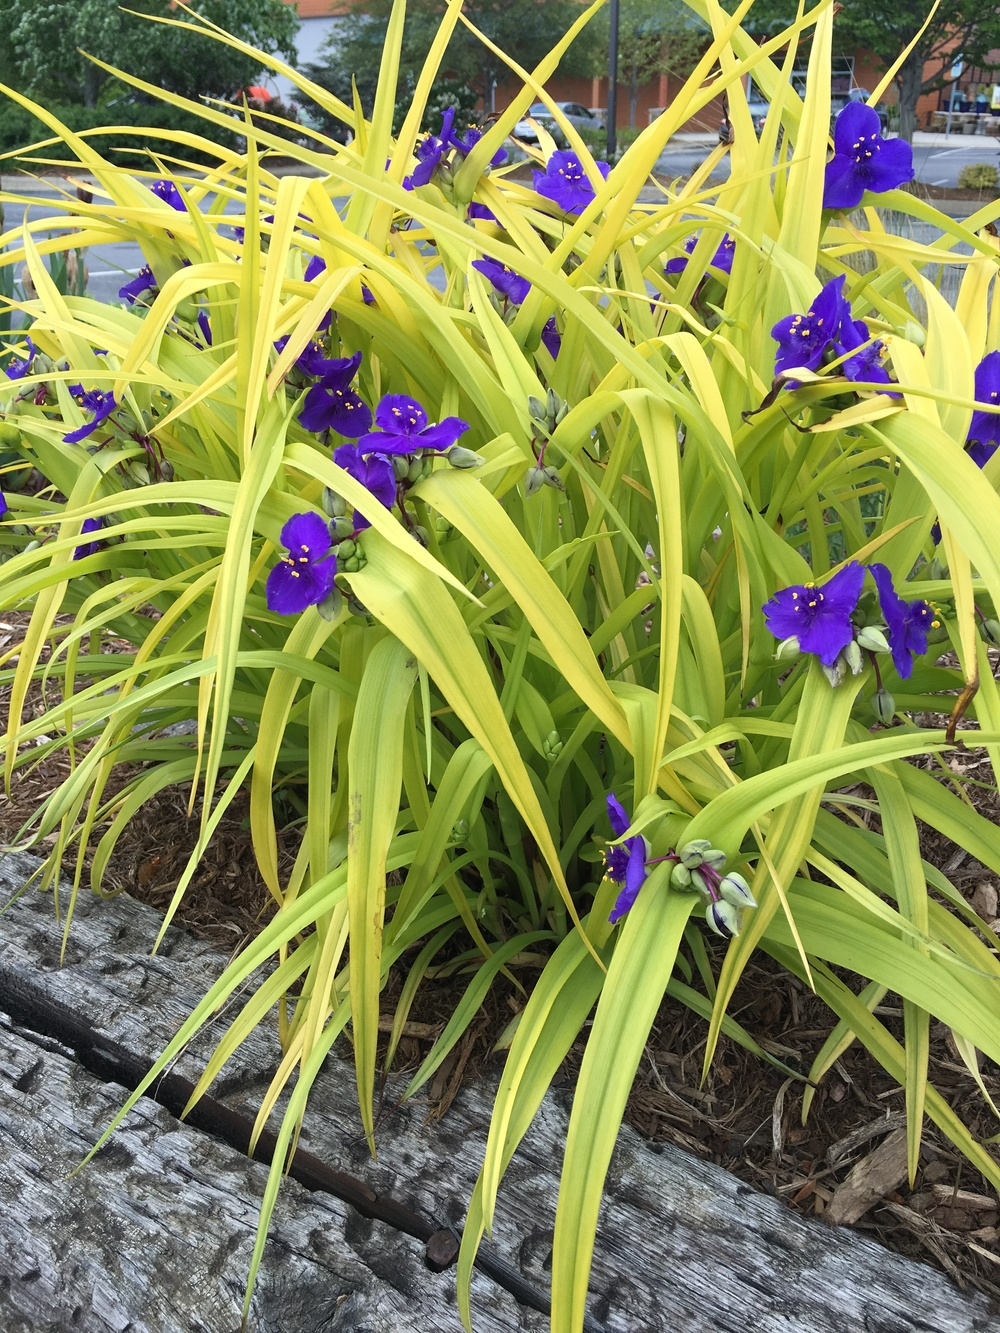 Other plants, like 'Sweet Kate' spiderwort, is the combination. The purple blooms against the chartreuse leaves does the combining work for you.